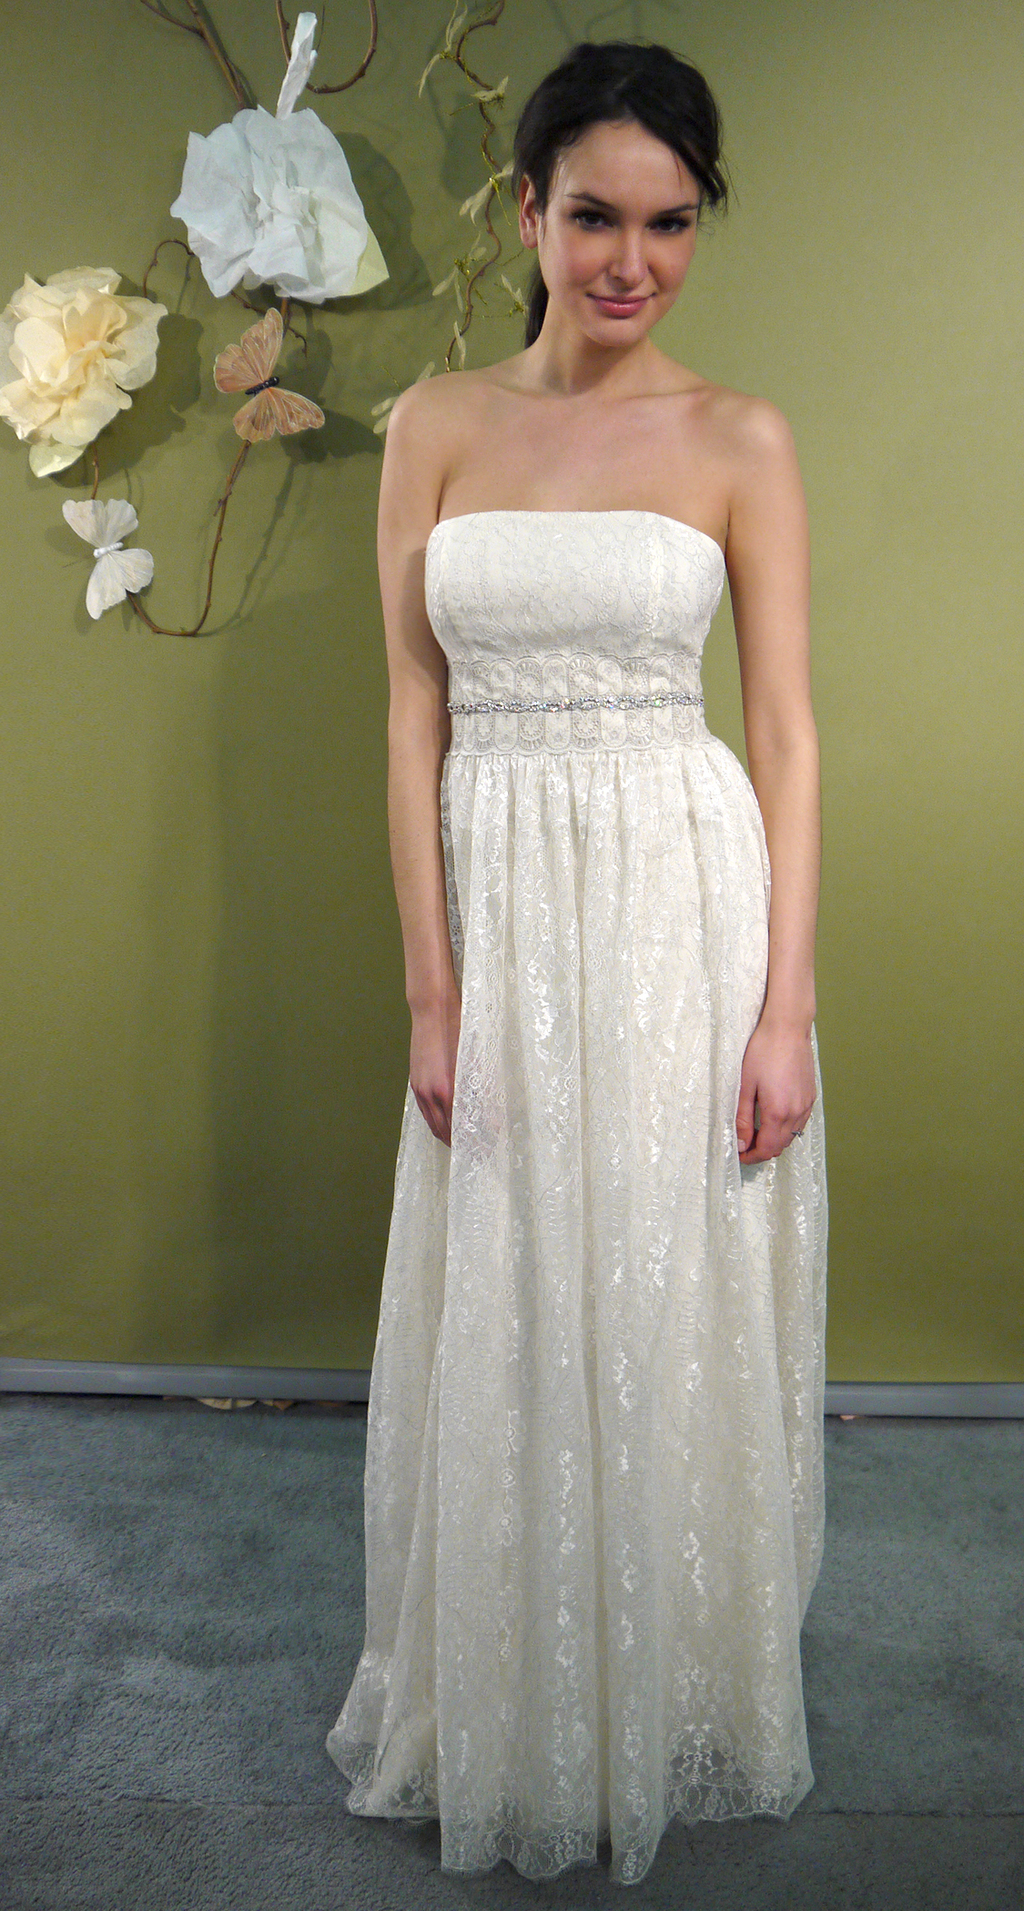 Fall-2011-wedding-dresses-norah-strapless-empire-wedding-dress-beaded-bridal-belt-claire-pettibone-lace-large.full